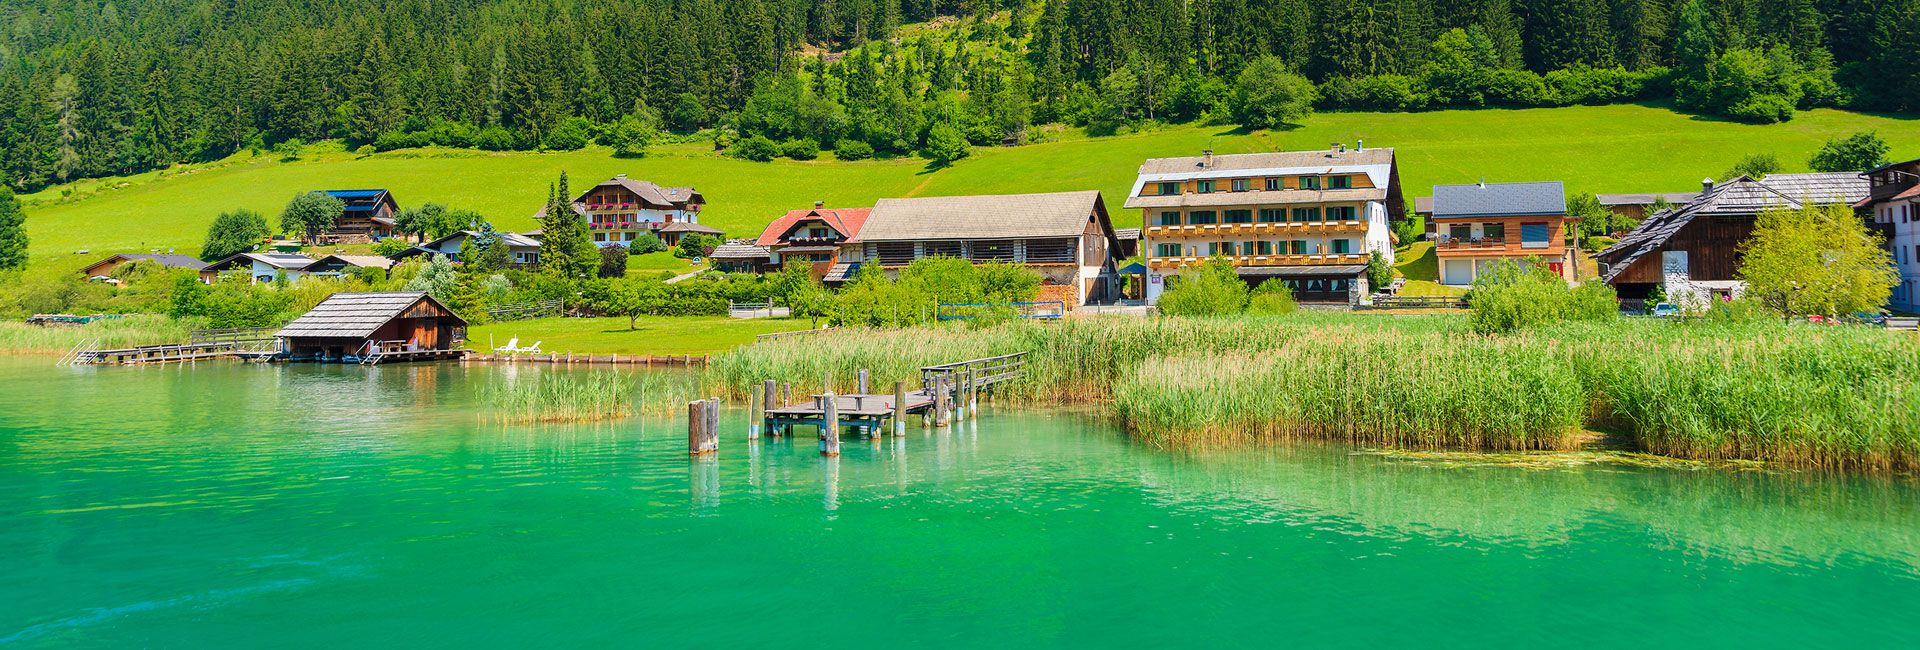 Chalets am See